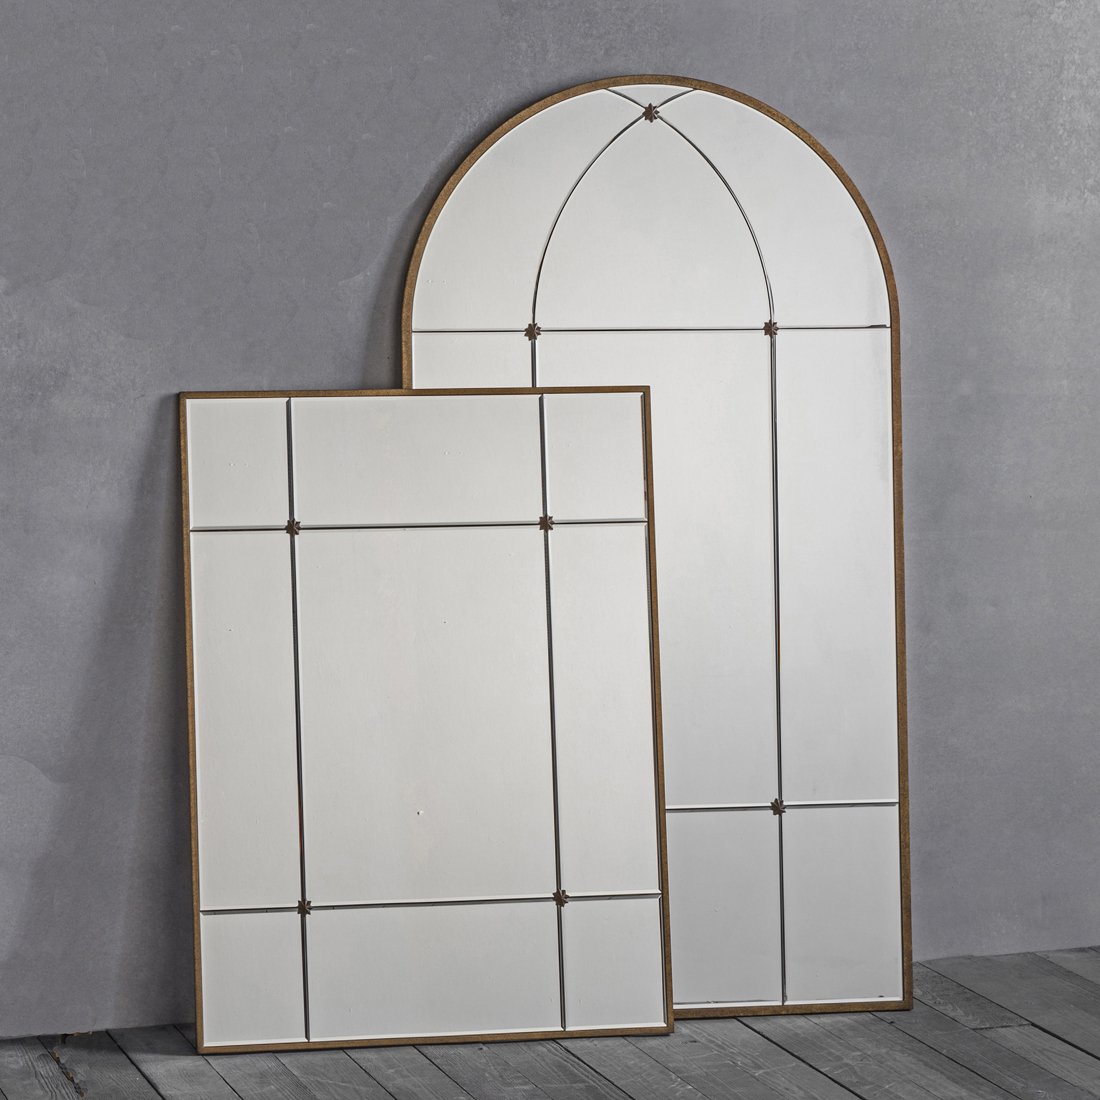 Metal Arch Window Wall Mirrors Inside Most Current Gold Window Wall Mirror – Arch Or Rectangle (View 7 of 20)